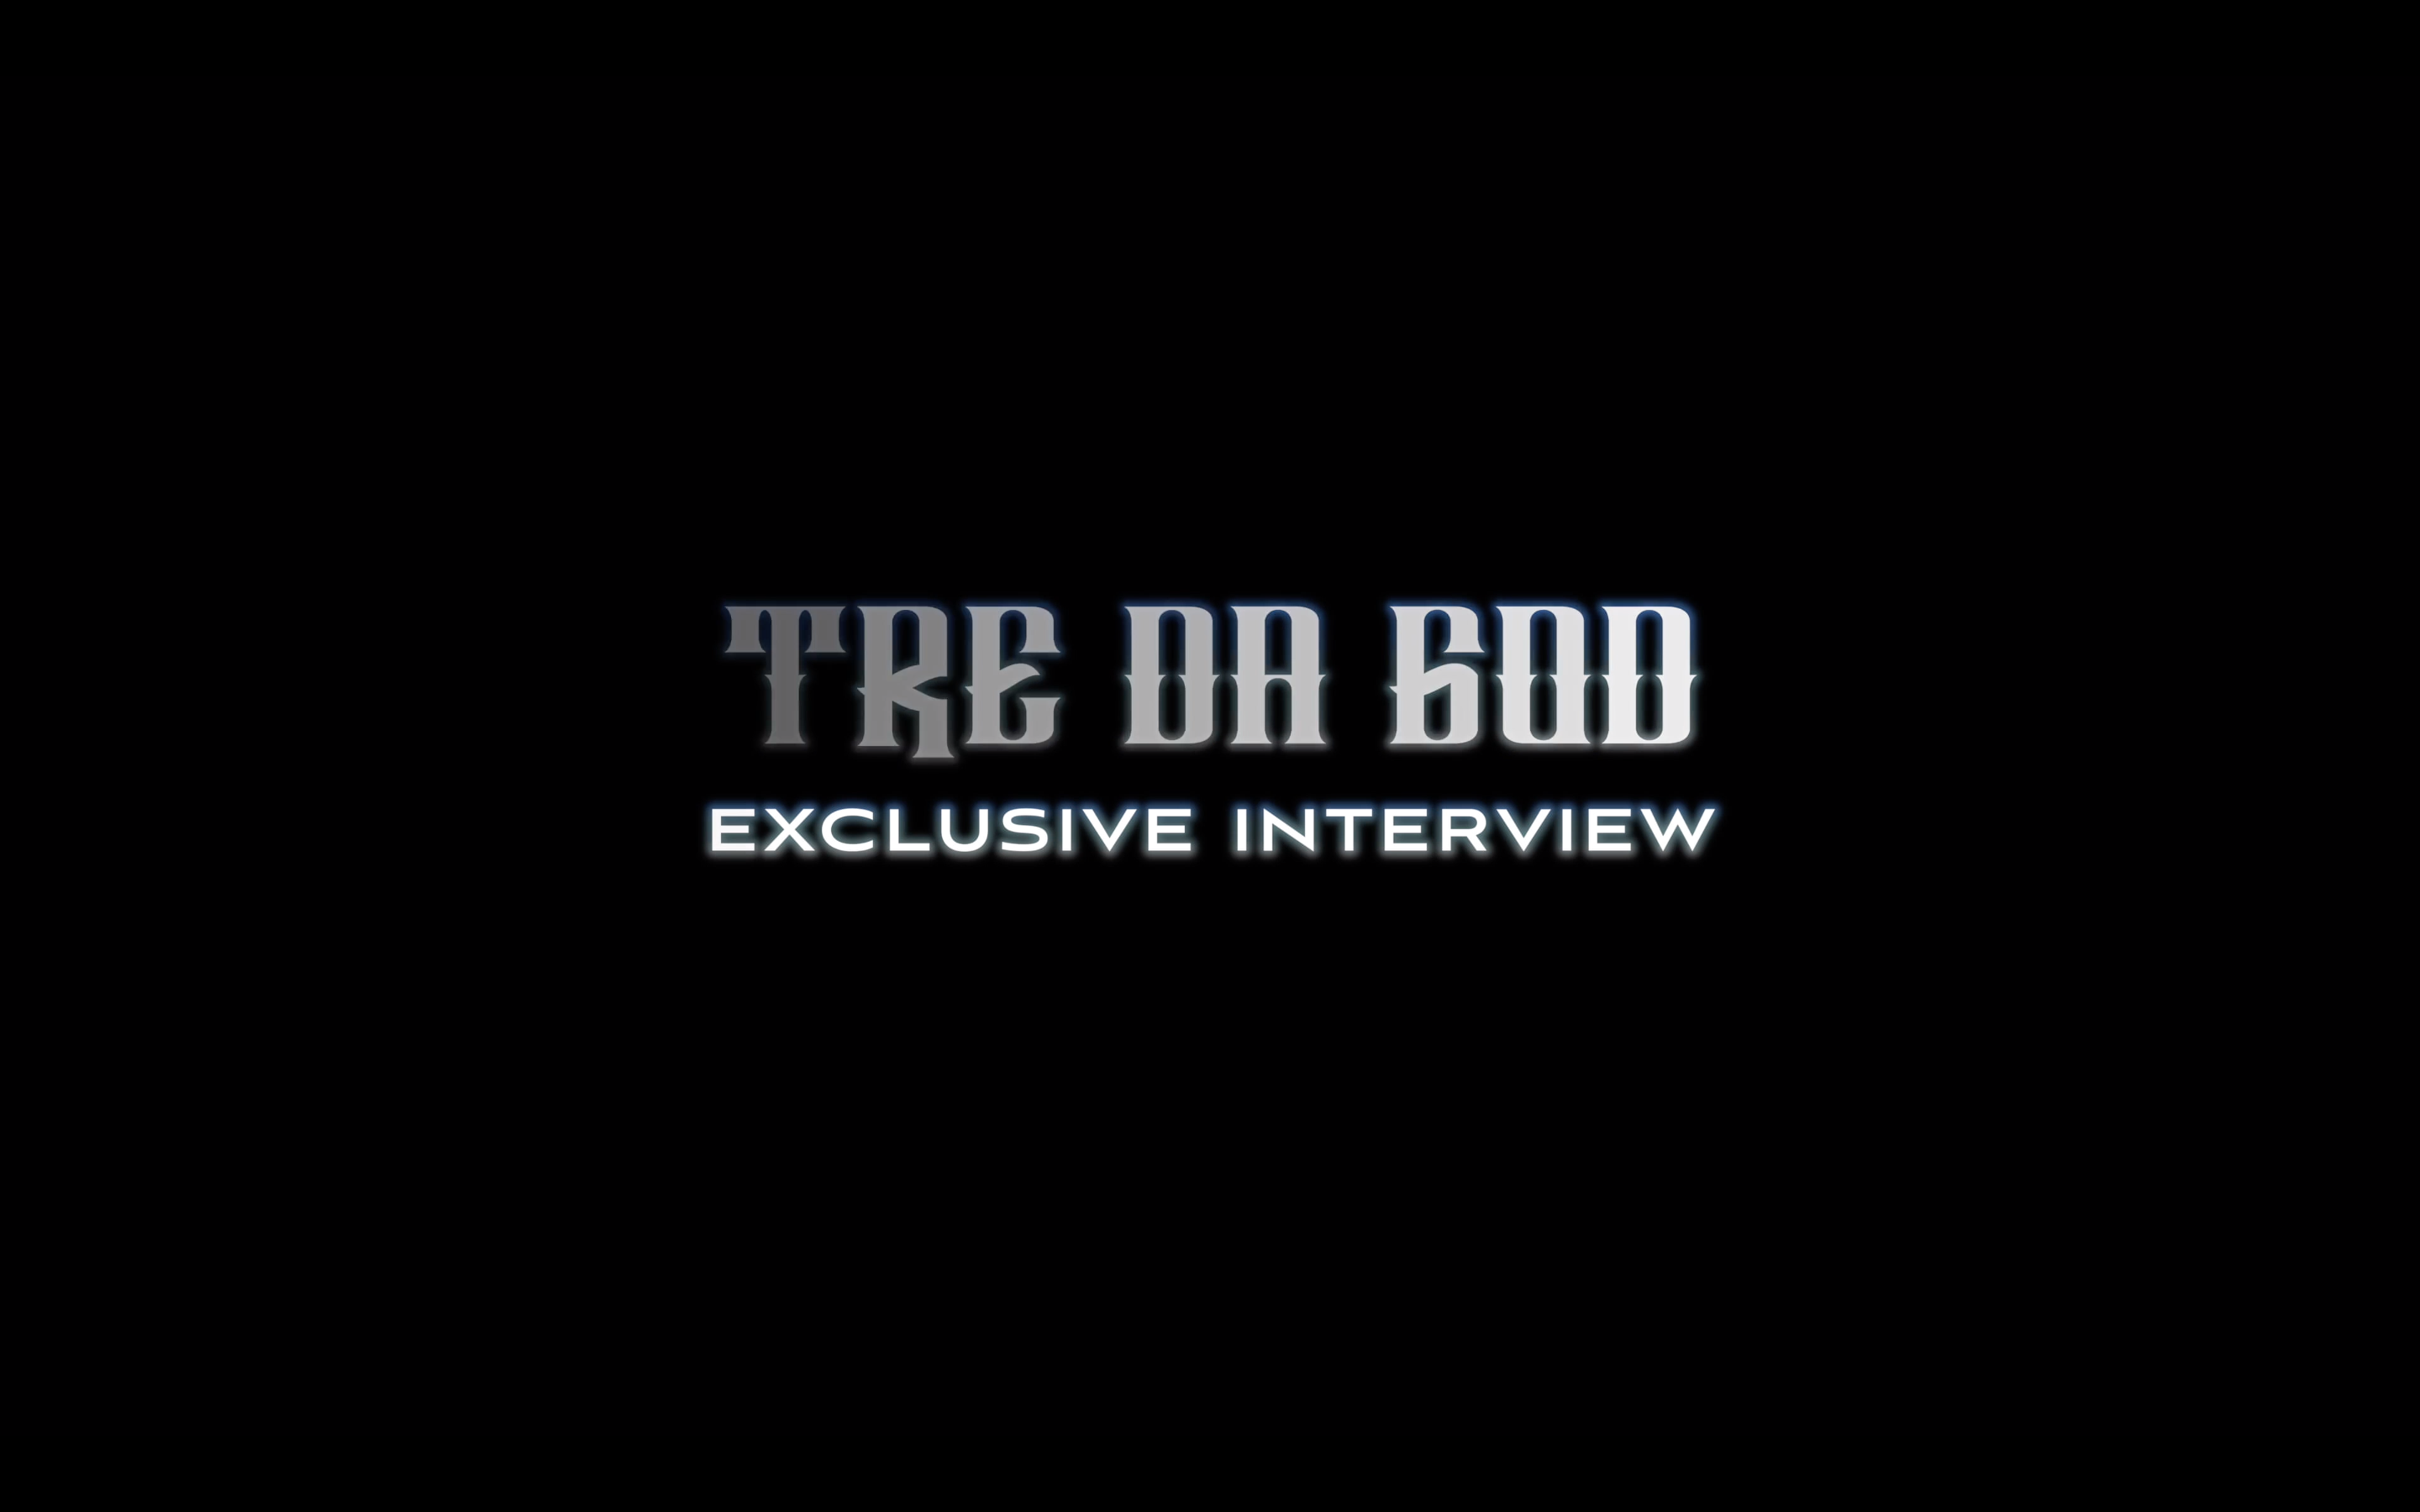 Part 1 Of Tr3 Da God Exclusive Interview Dropping This Friday November 16 2018 Check Out Tr3 Da God New Video On Yout Hip Hop Music God Youtube Videos